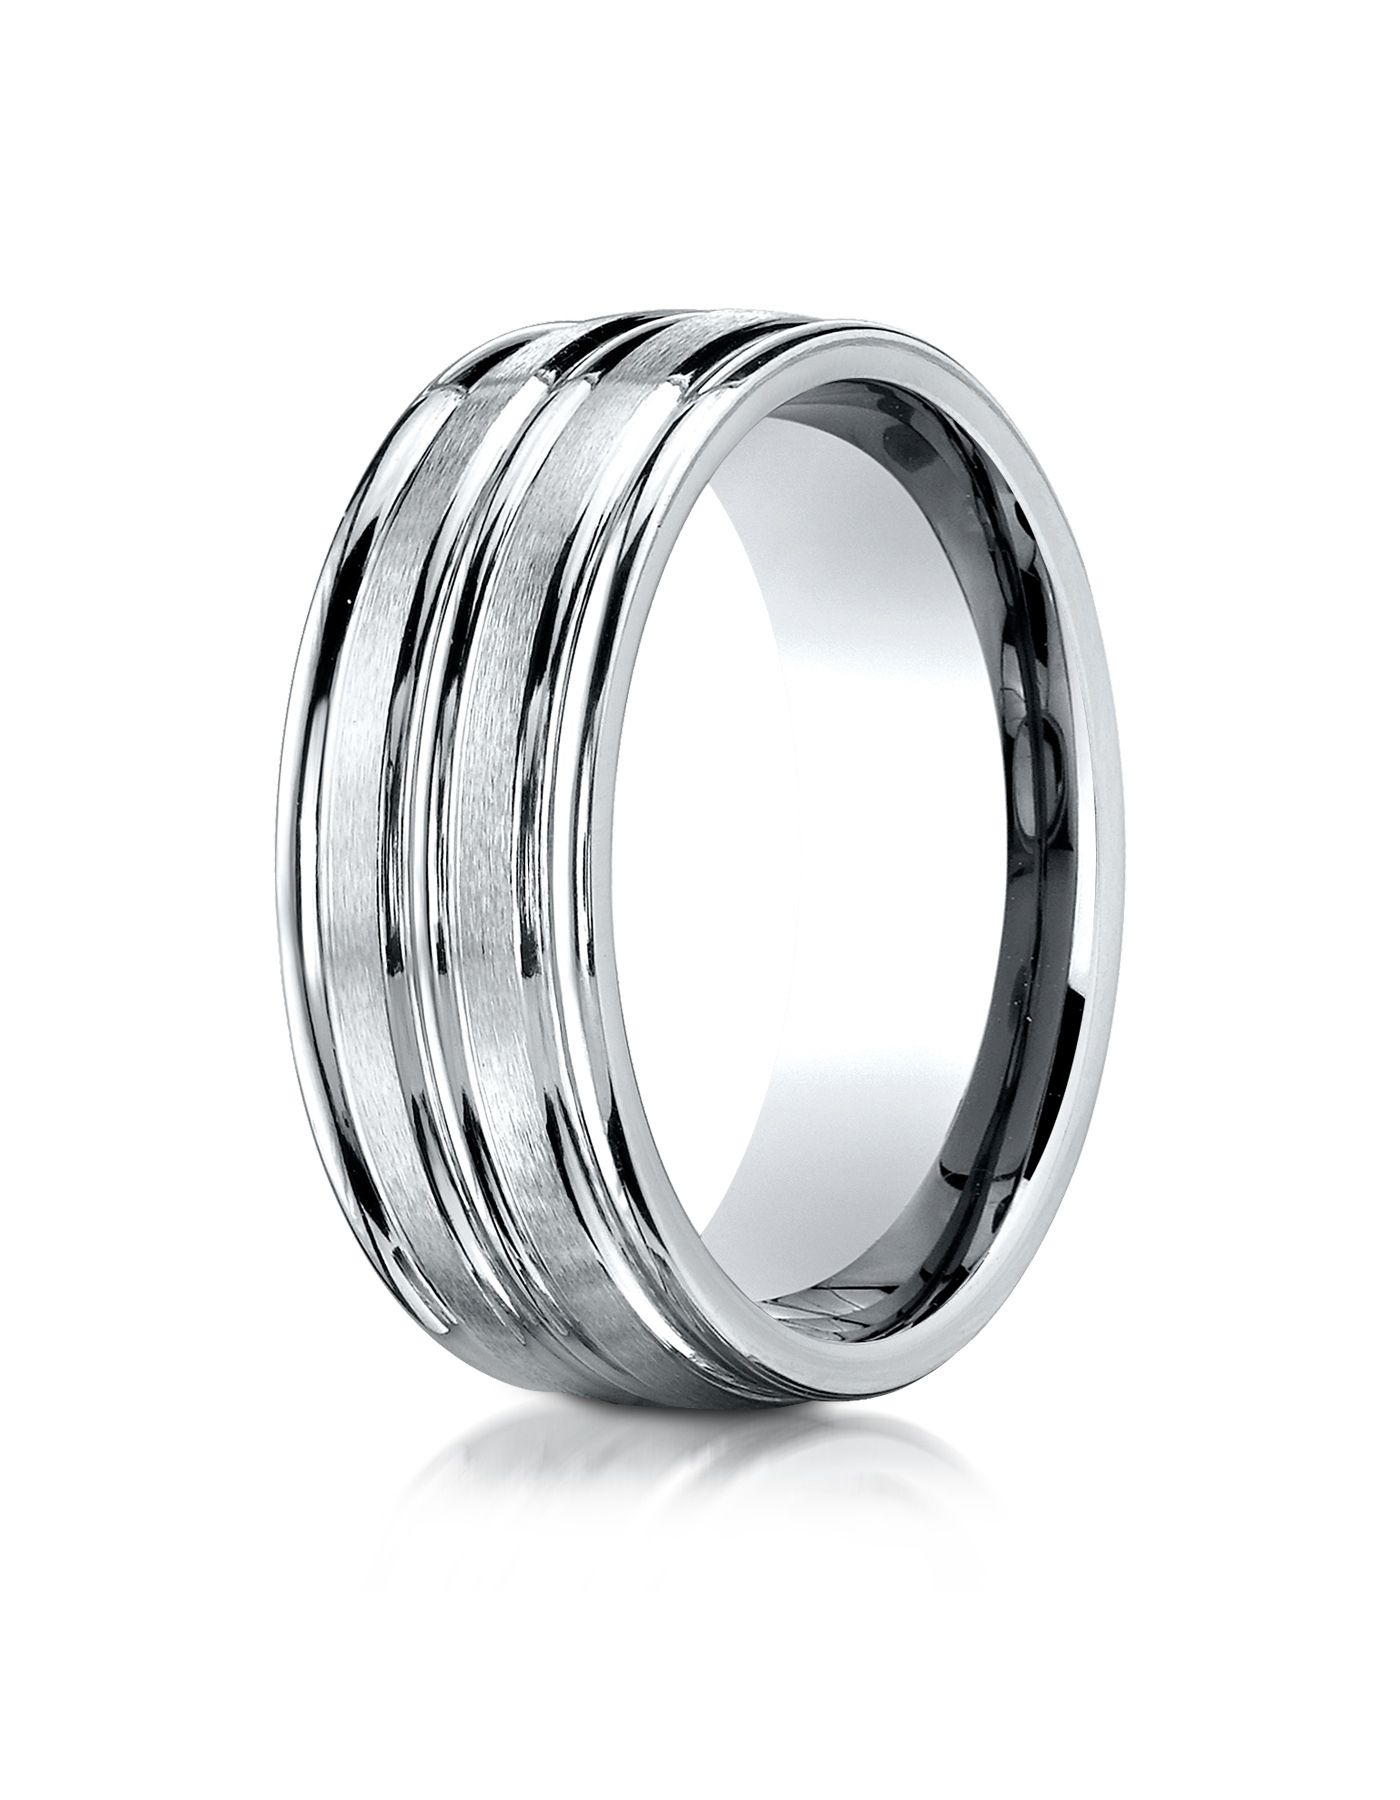 Aetonal Mens Cobalt Chrome 8mm Comfort Fit Satin Polished Center Round Edge Wedding Band Ring